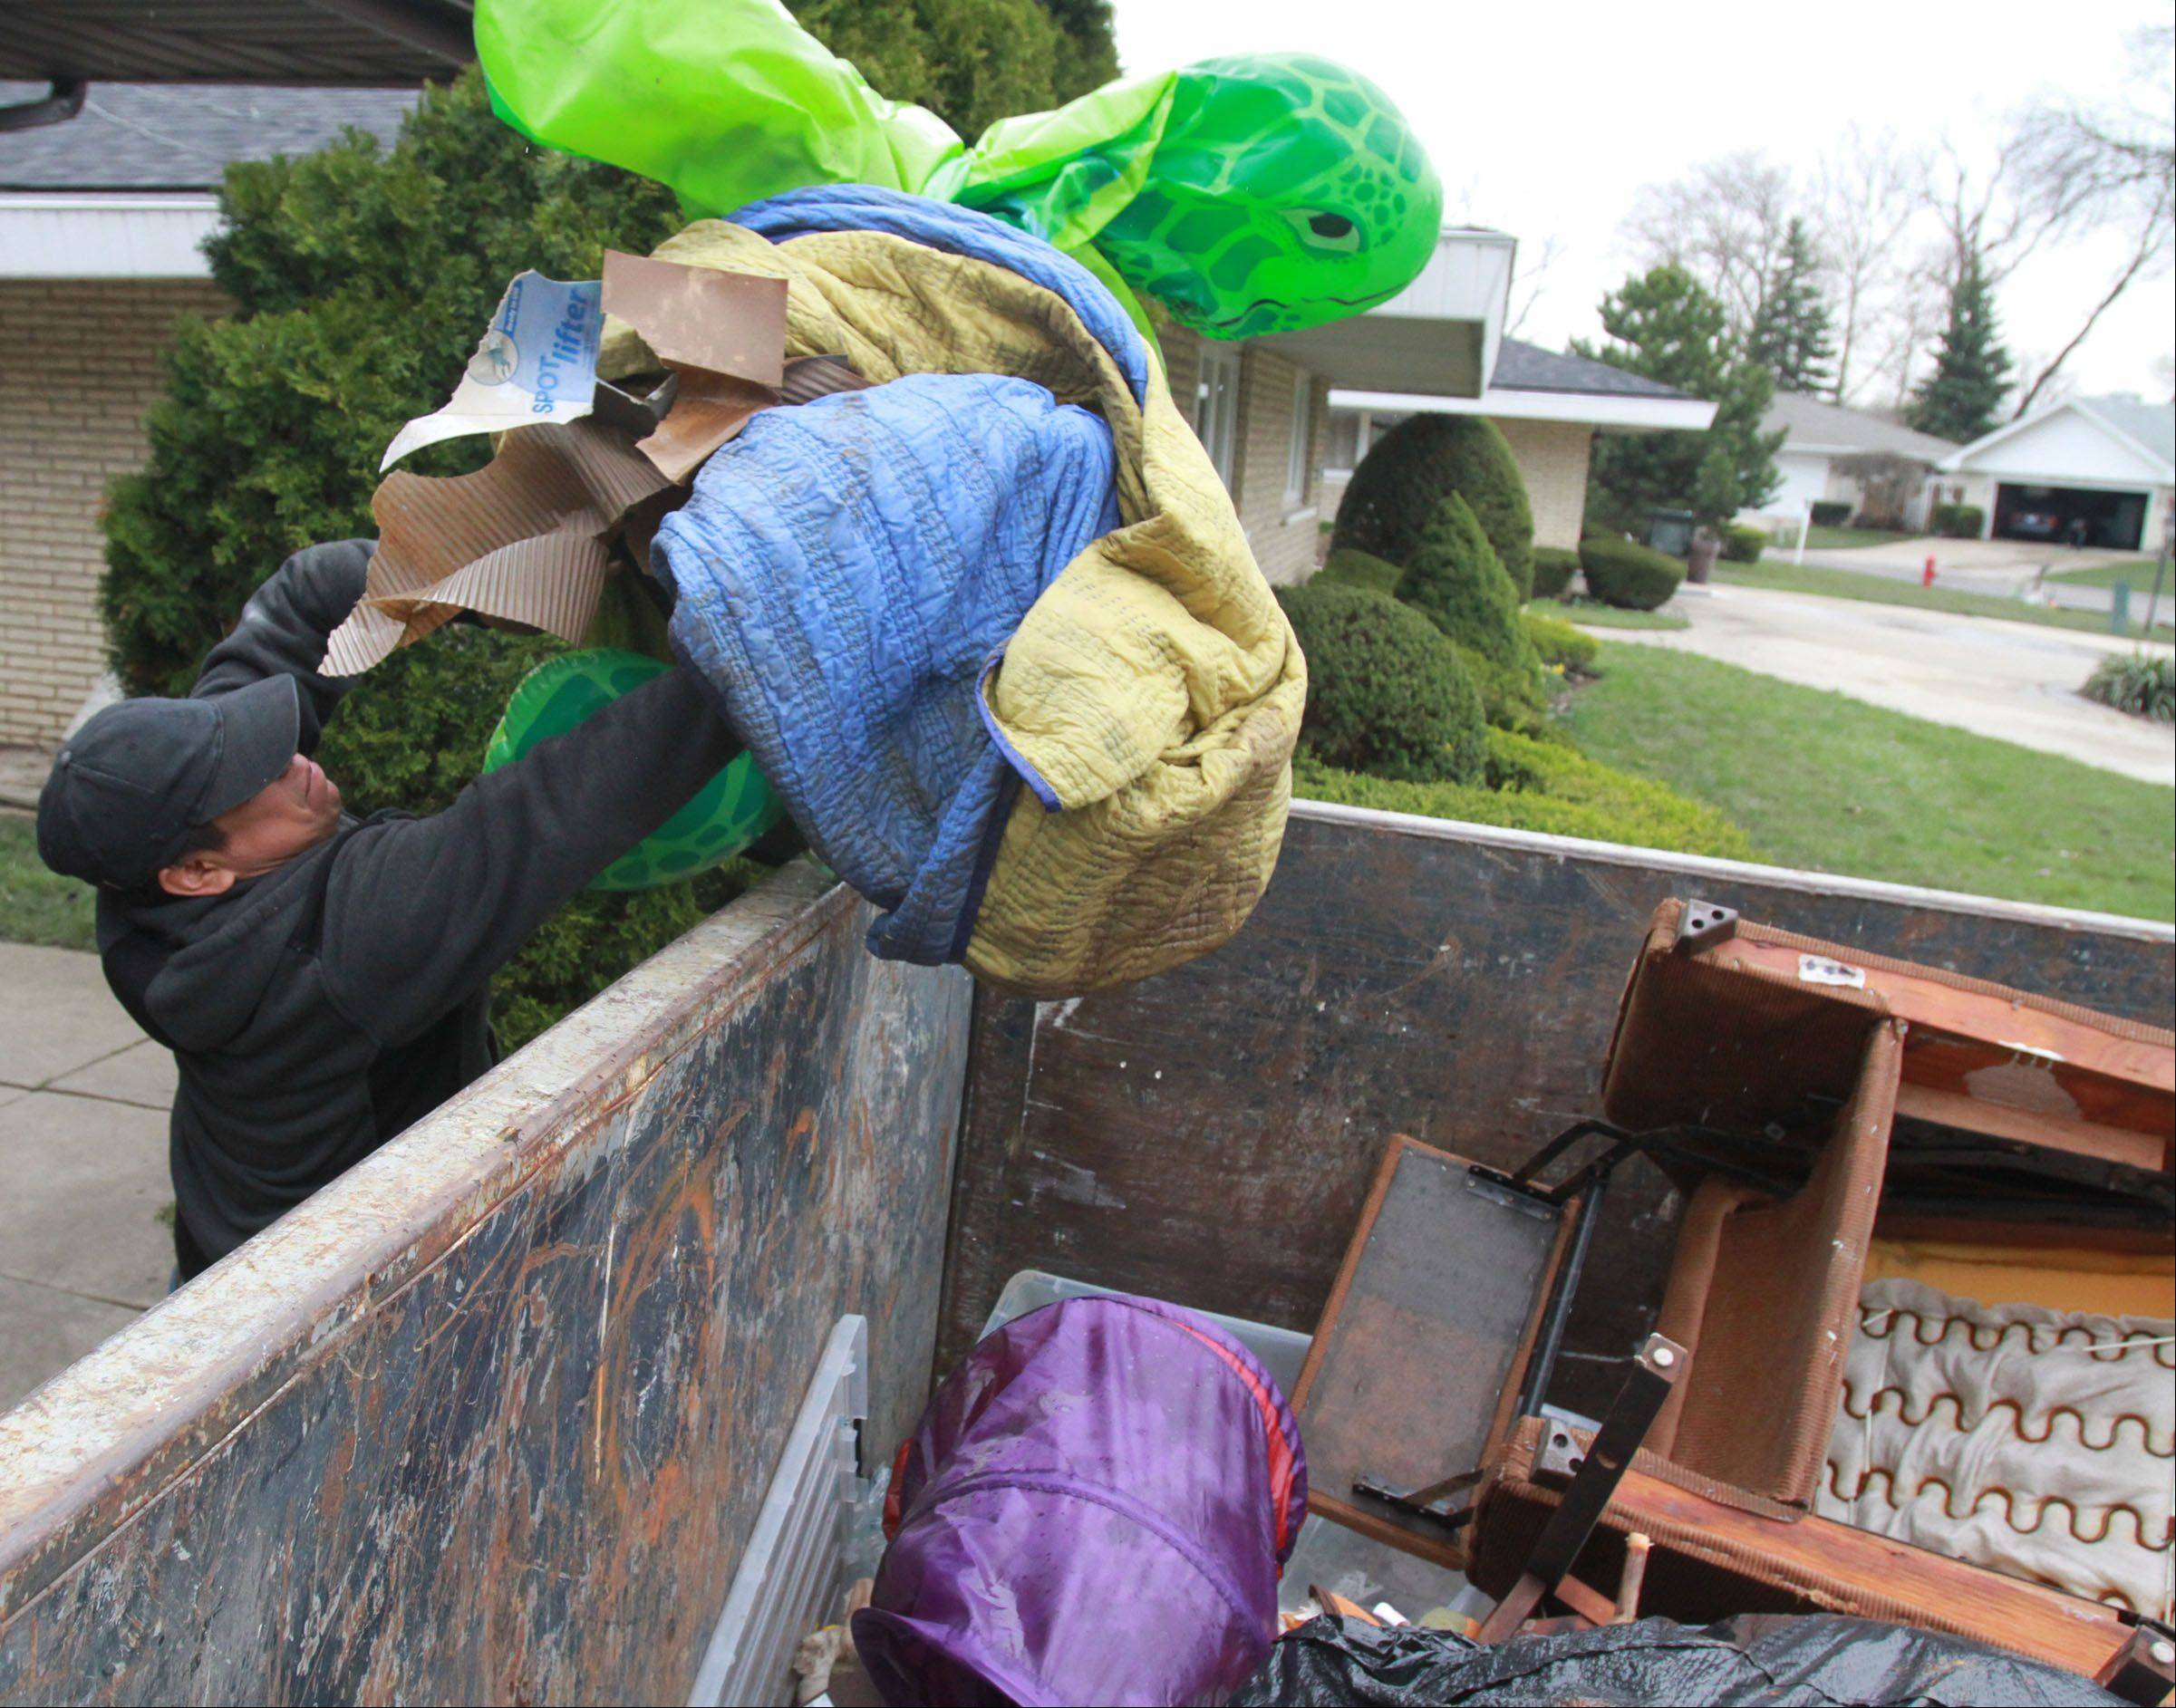 Danny Mateos of Arthur J. Rogers and Company, throws toys in a trash receptacle at Kathi and Russell Fantetti's home on Berry Lane in Des Plaines Tuesday.